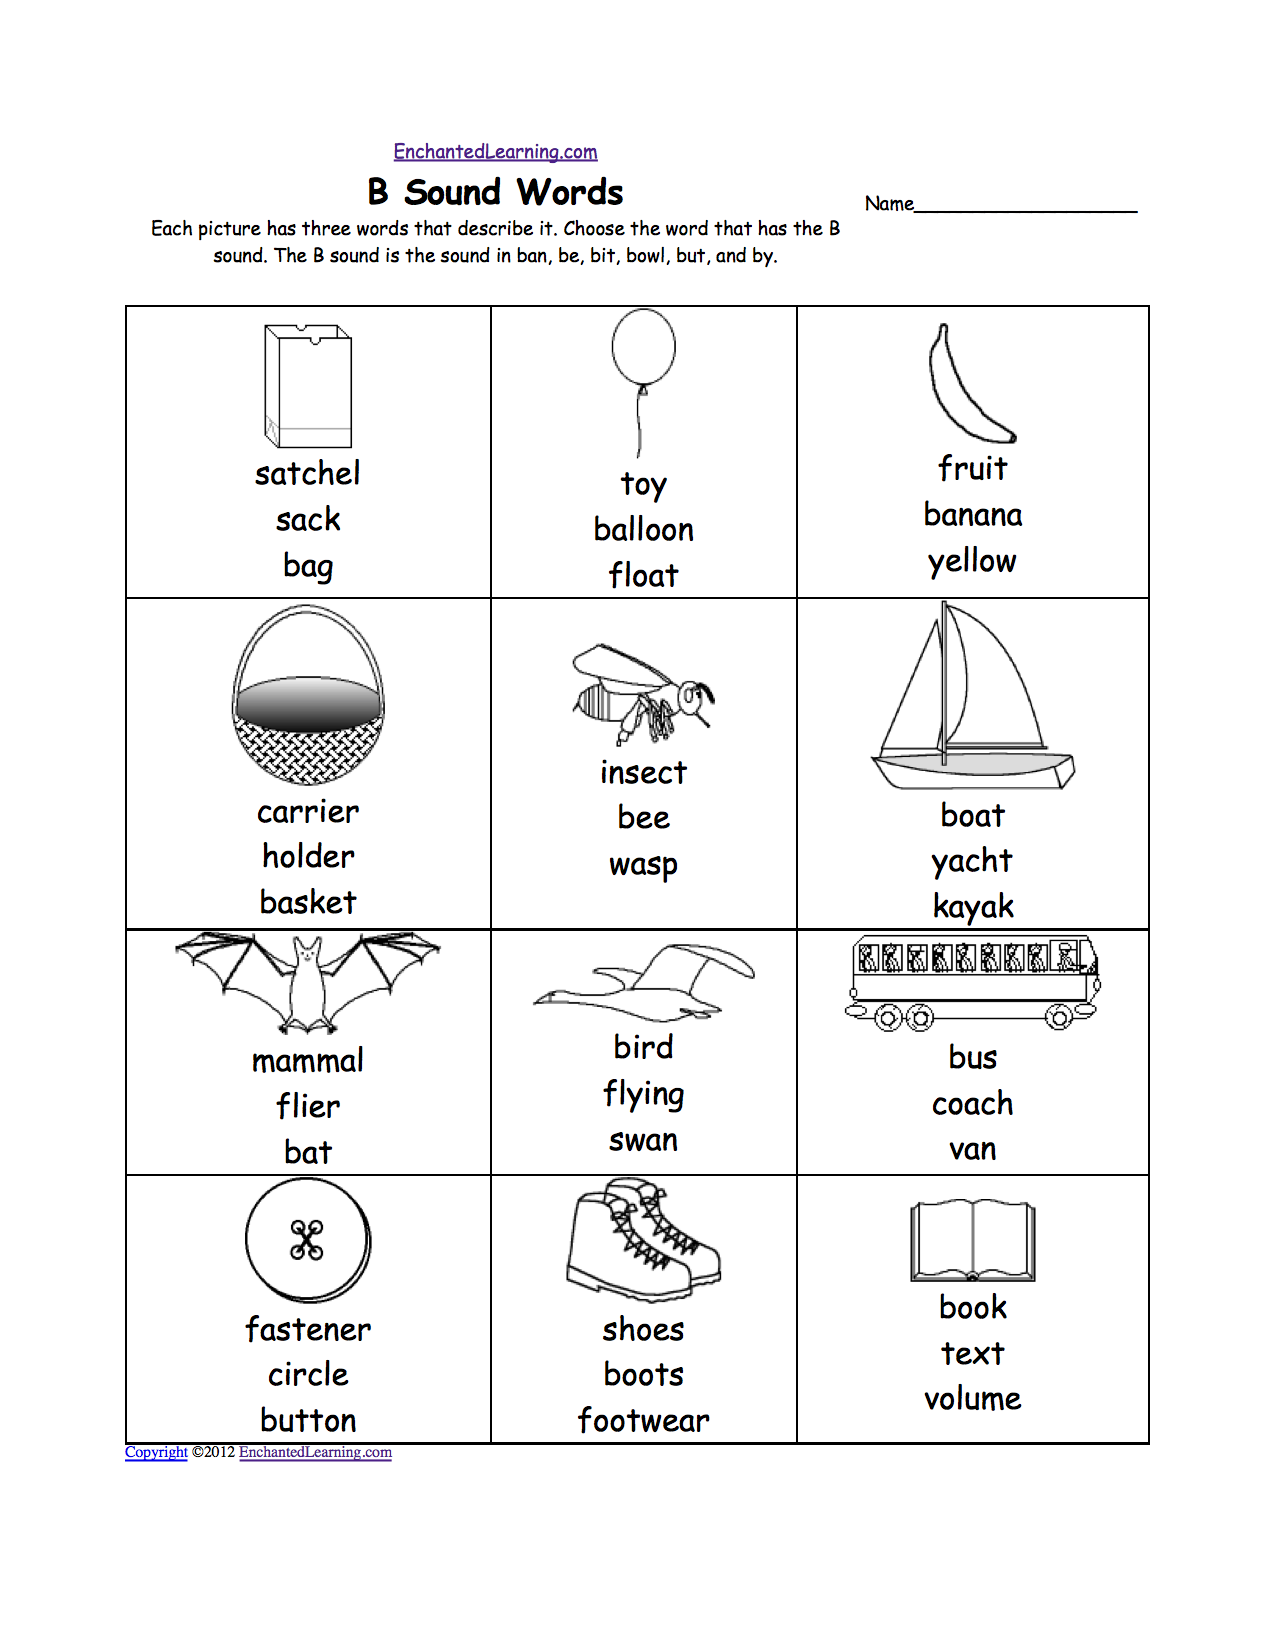 Weirdmailus  Seductive Phonics Worksheets Multiple Choice Worksheets To Print  With Marvelous Quotbquot Sound Phonics Worksheet Multiple Choice Each Picture Has Three Words That Describe It Choose The Word That Has A Quotbquot Sound The Quotbquot Sound Is The Sound  With Alluring L Worksheets Also Solving Systems Of Equations Using Substitution Worksheet In Addition Baby Animal Names Worksheet And Subtraction Kindergarten Worksheets As Well As Implied Main Idea Worksheet Additionally Dictionary Scavenger Hunt Worksheet From Enchantedlearningcom With Weirdmailus  Marvelous Phonics Worksheets Multiple Choice Worksheets To Print  With Alluring Quotbquot Sound Phonics Worksheet Multiple Choice Each Picture Has Three Words That Describe It Choose The Word That Has A Quotbquot Sound The Quotbquot Sound Is The Sound  And Seductive L Worksheets Also Solving Systems Of Equations Using Substitution Worksheet In Addition Baby Animal Names Worksheet From Enchantedlearningcom